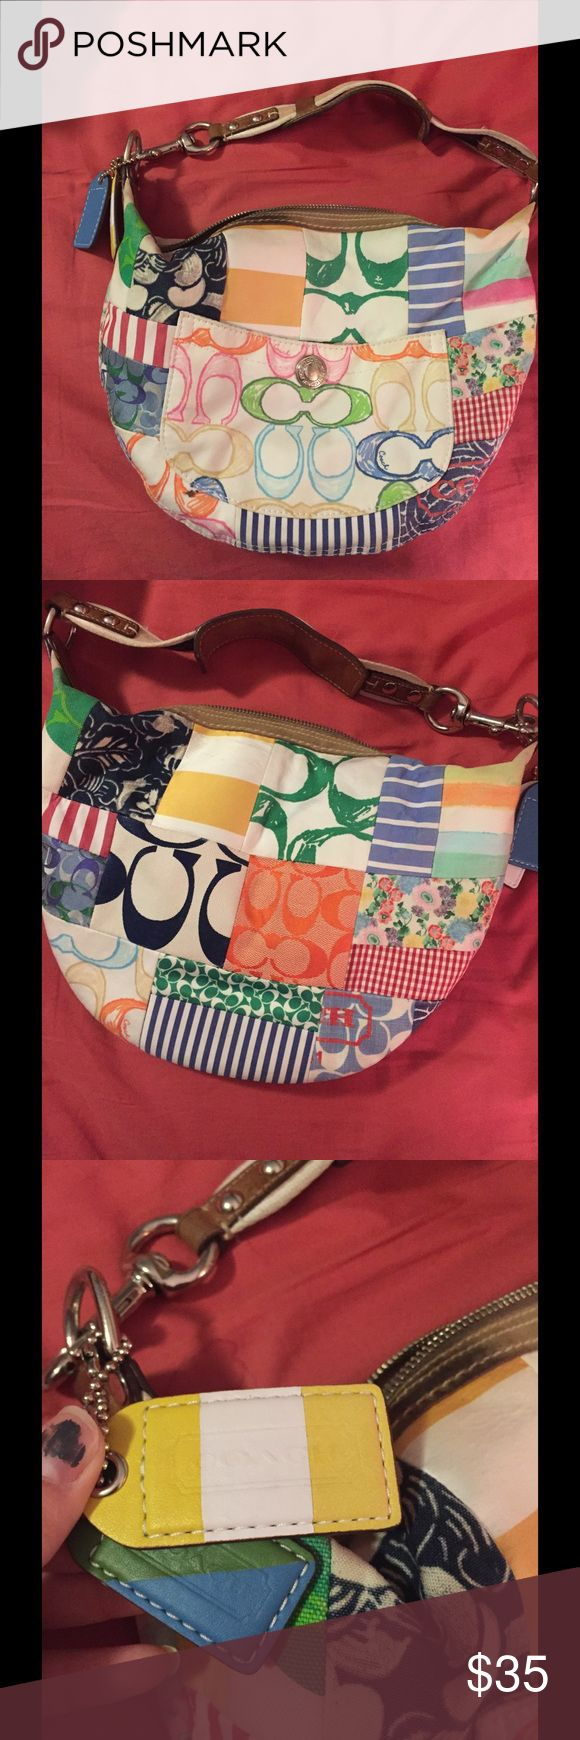 """Coach Purse Authentic. Super cute, about 12"""". Well loved but clean. Coach Bags Hobos"""